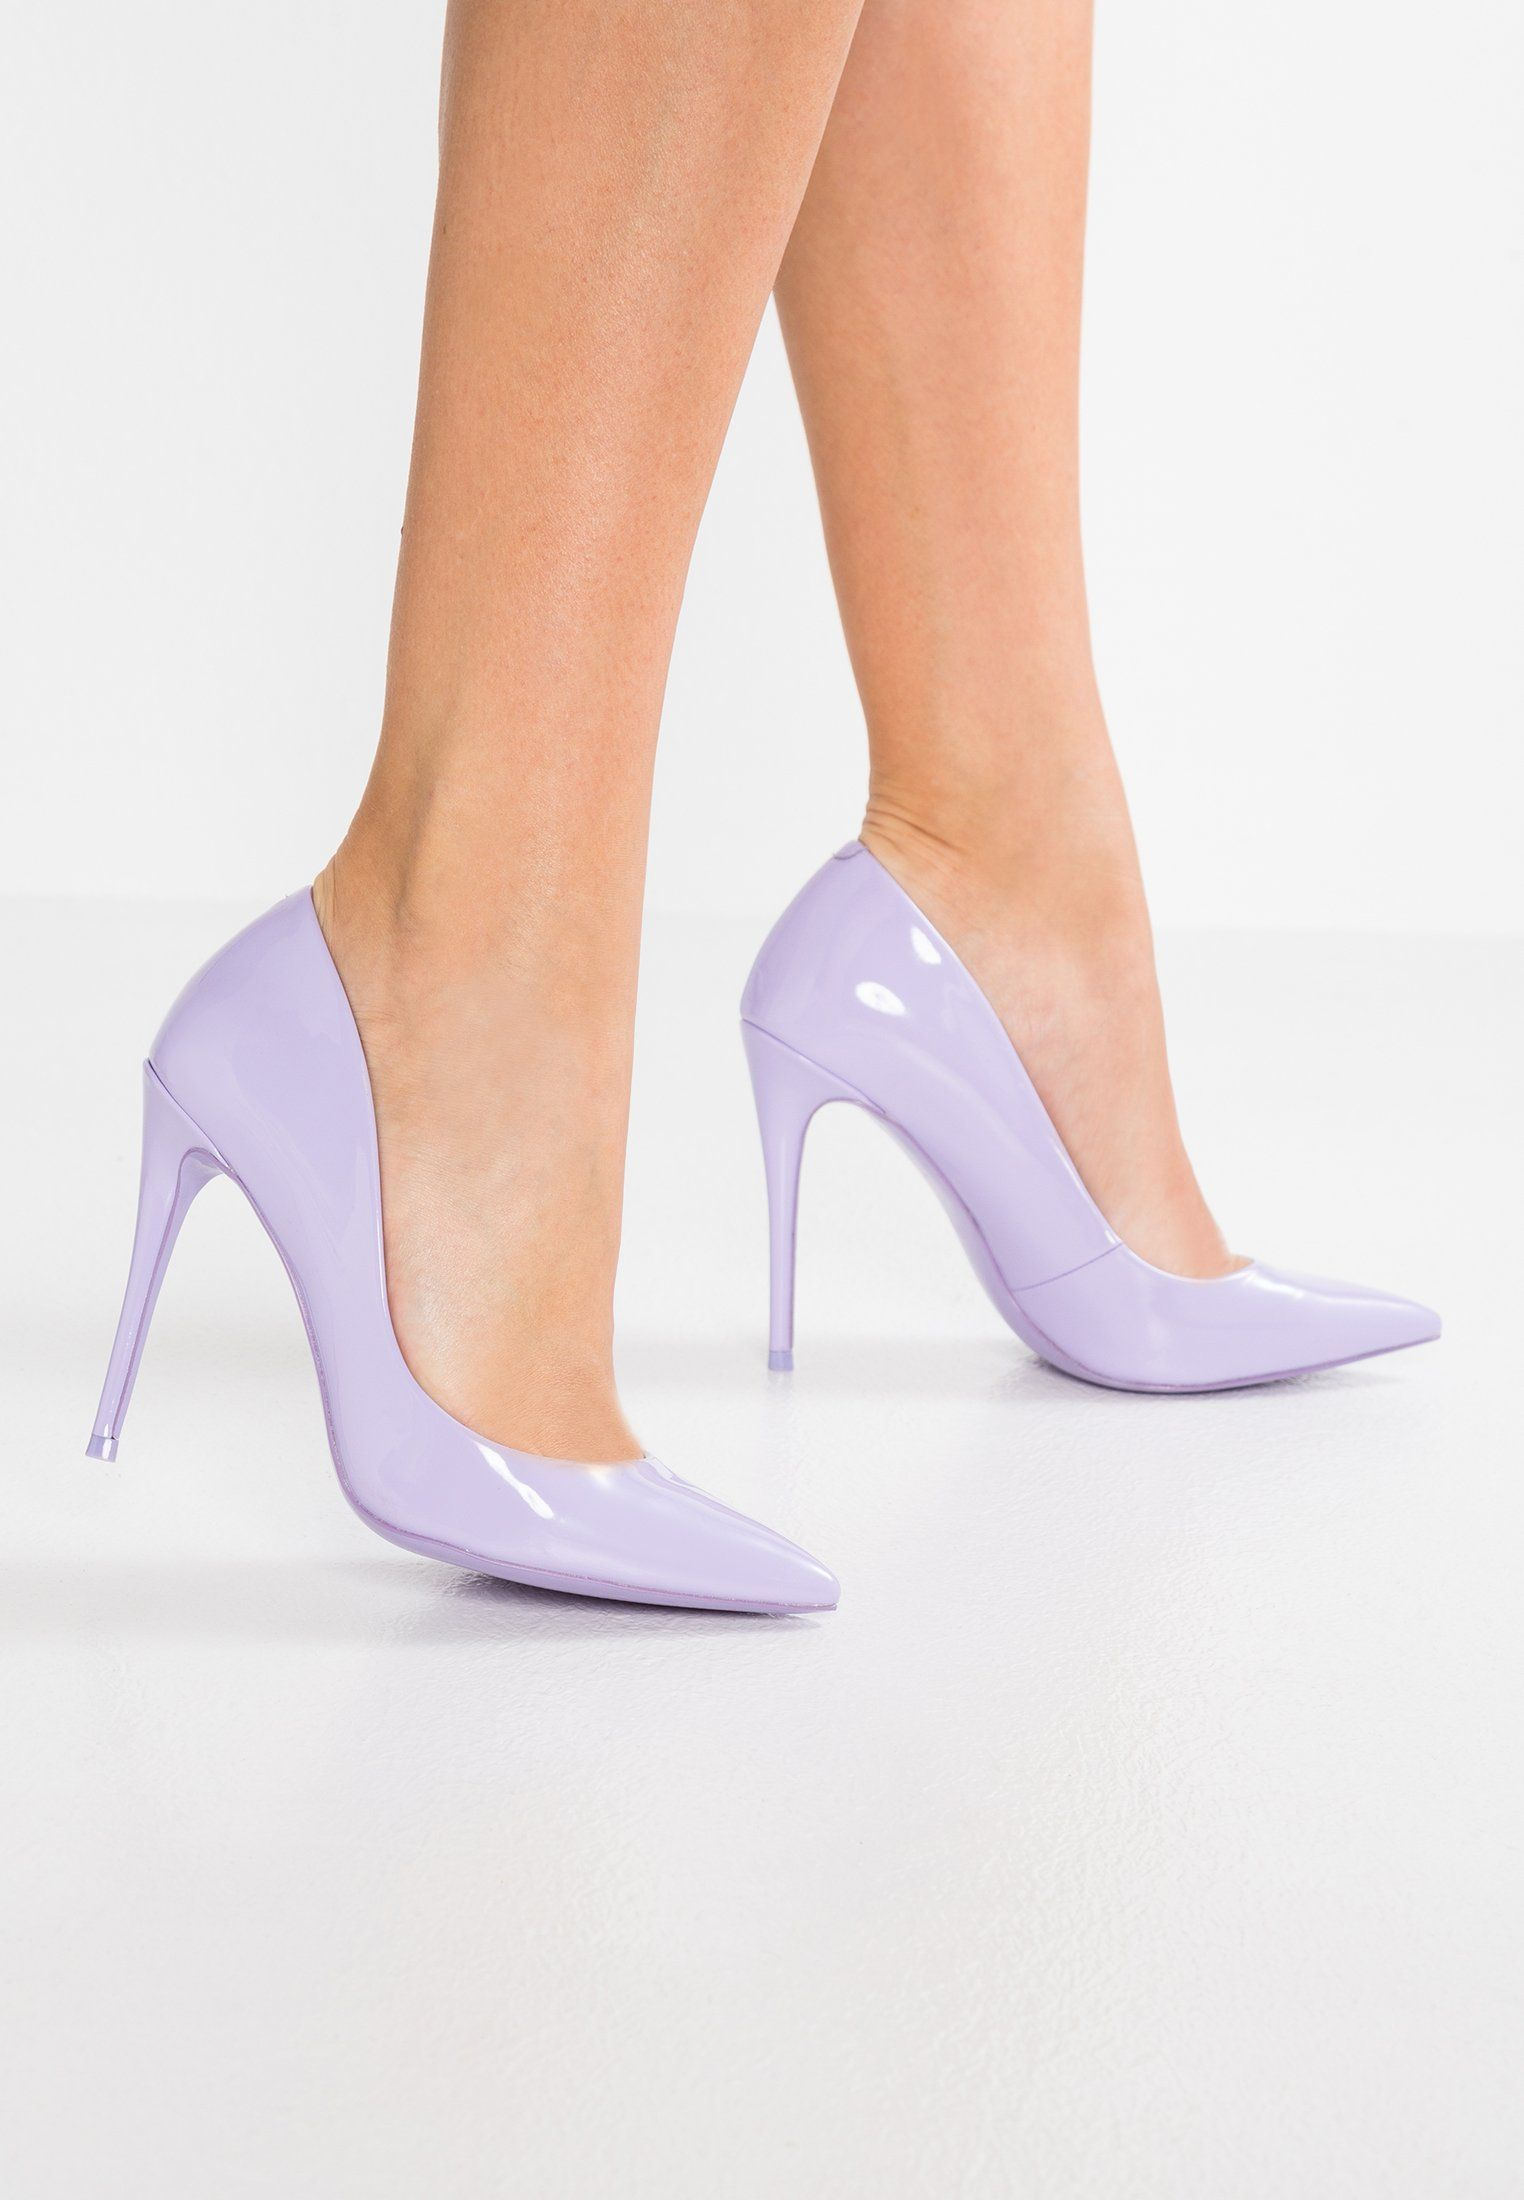 b879a728e0 ALDO STESSY - High heels - lilac - Zalando.co.uk | MISC, PART OF ...